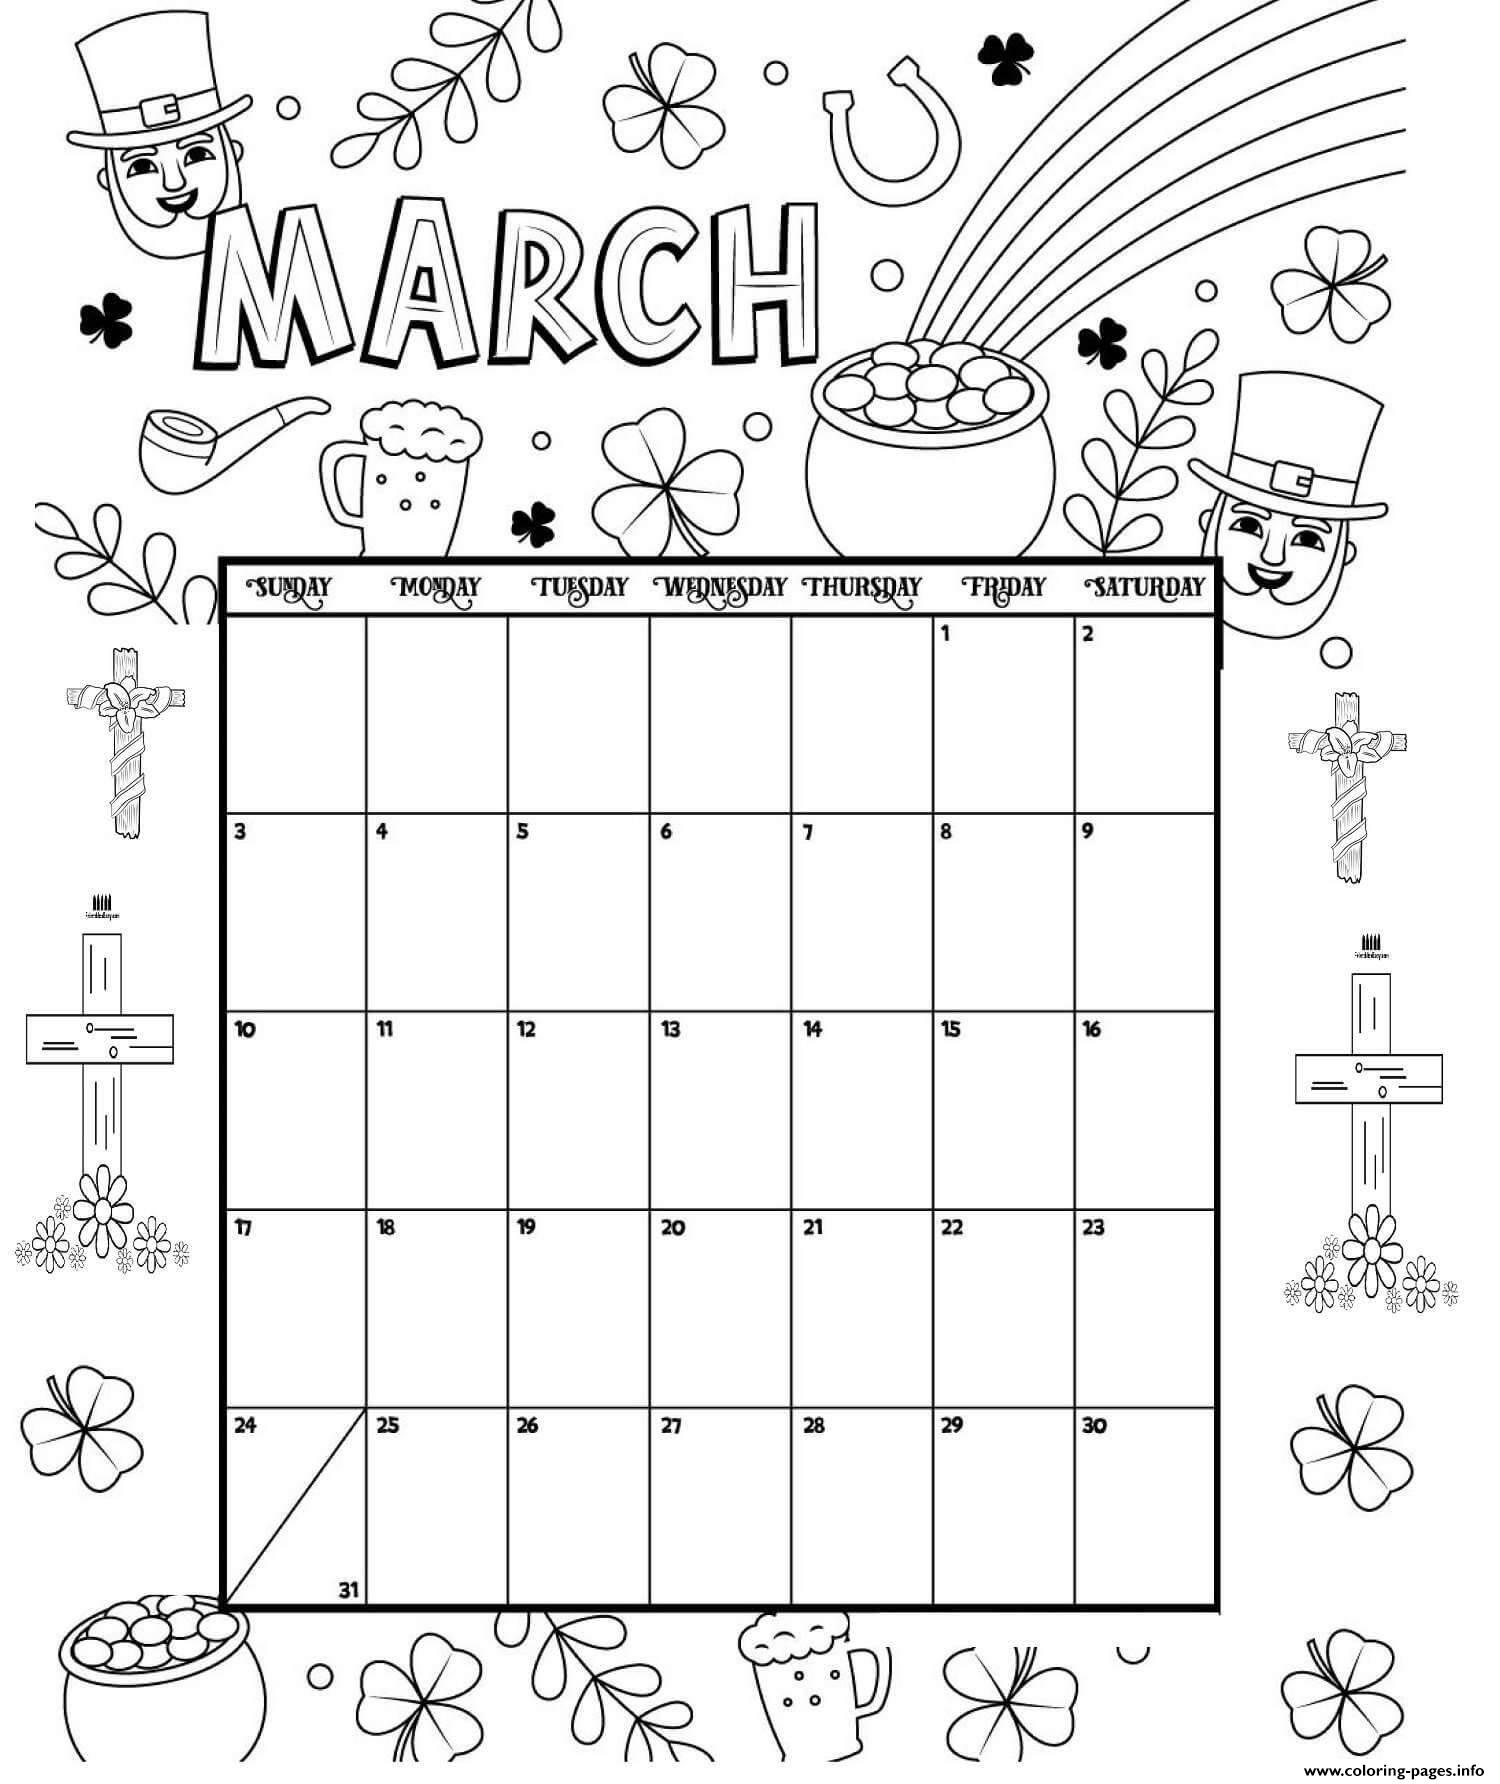 March Coloring Calendar 2019 Coloring Pages Printable